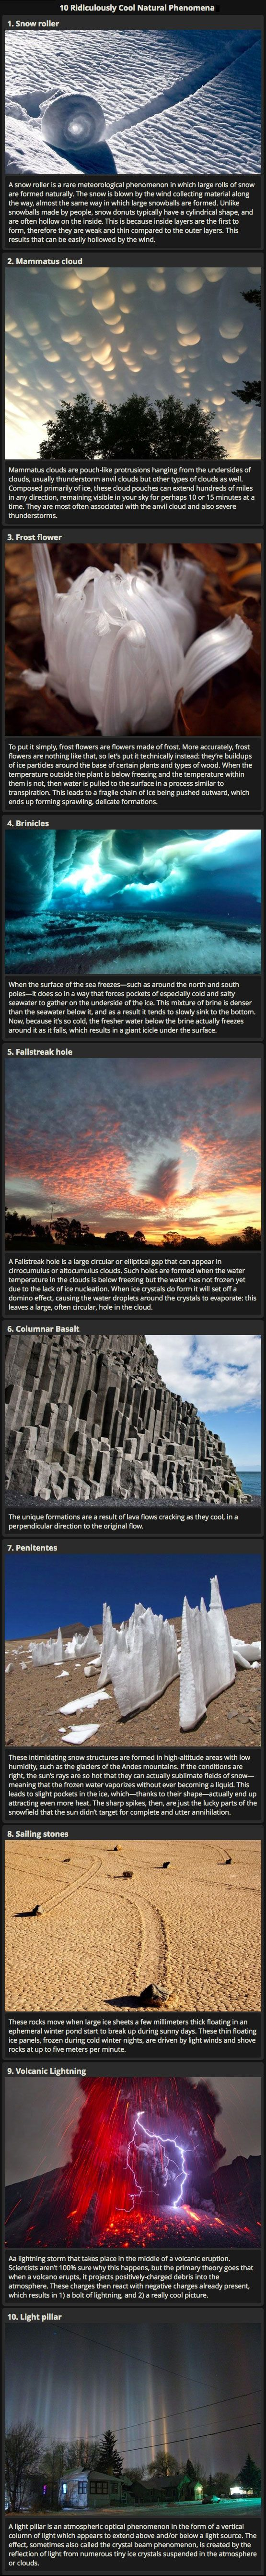 We have rounded up some ridiculously cool natural phenomena that you may not have known about.